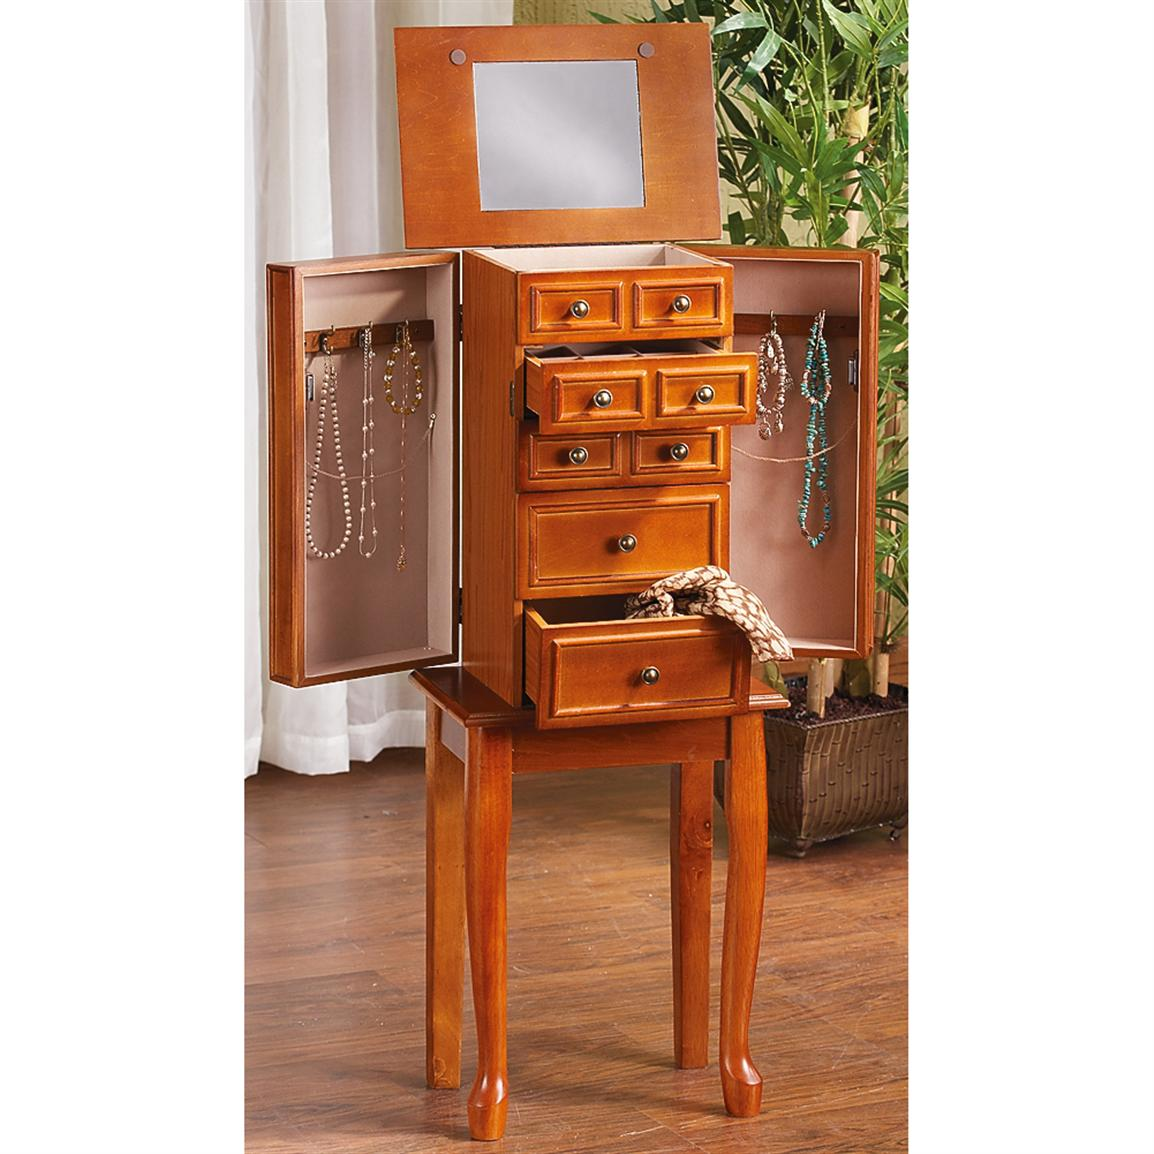 new view gifts and accessories jewelry armoire jewelry ideas